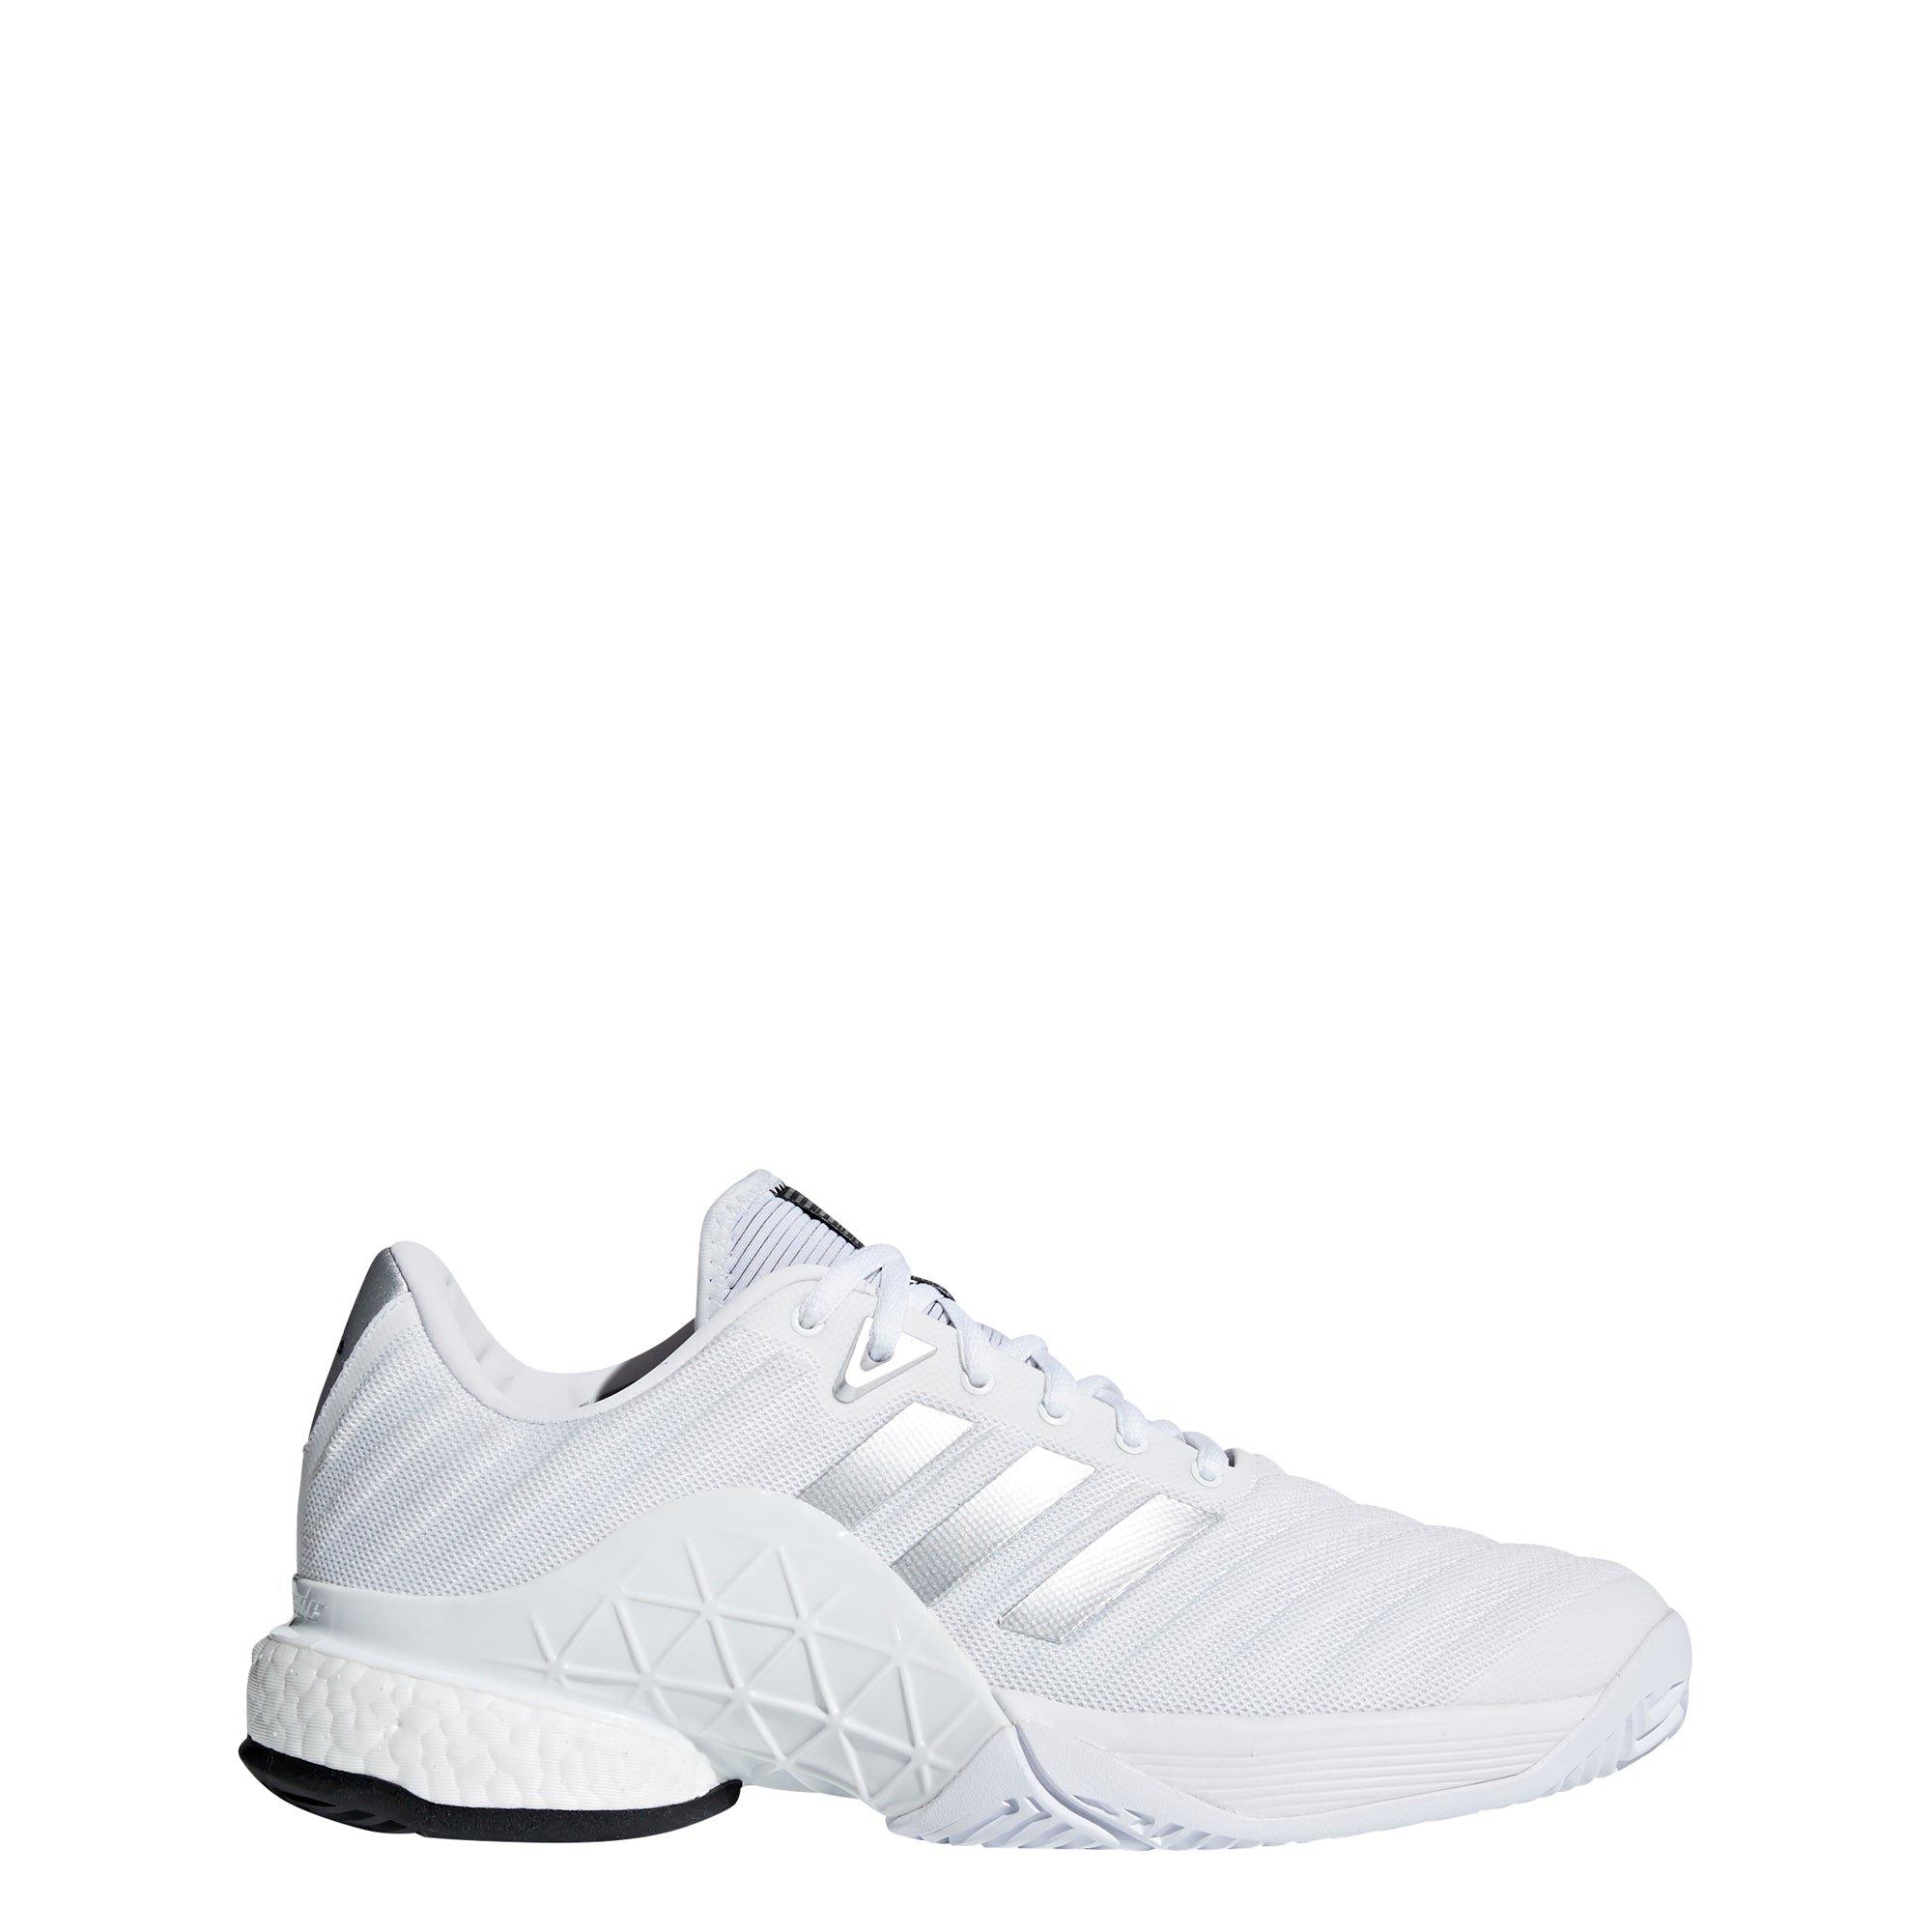 cheap for sale huge discount exclusive range Buy adidas Men barricade 2018 boost Tennis Shoes, White/Silver Online in  Singapore | Royal Sporting House